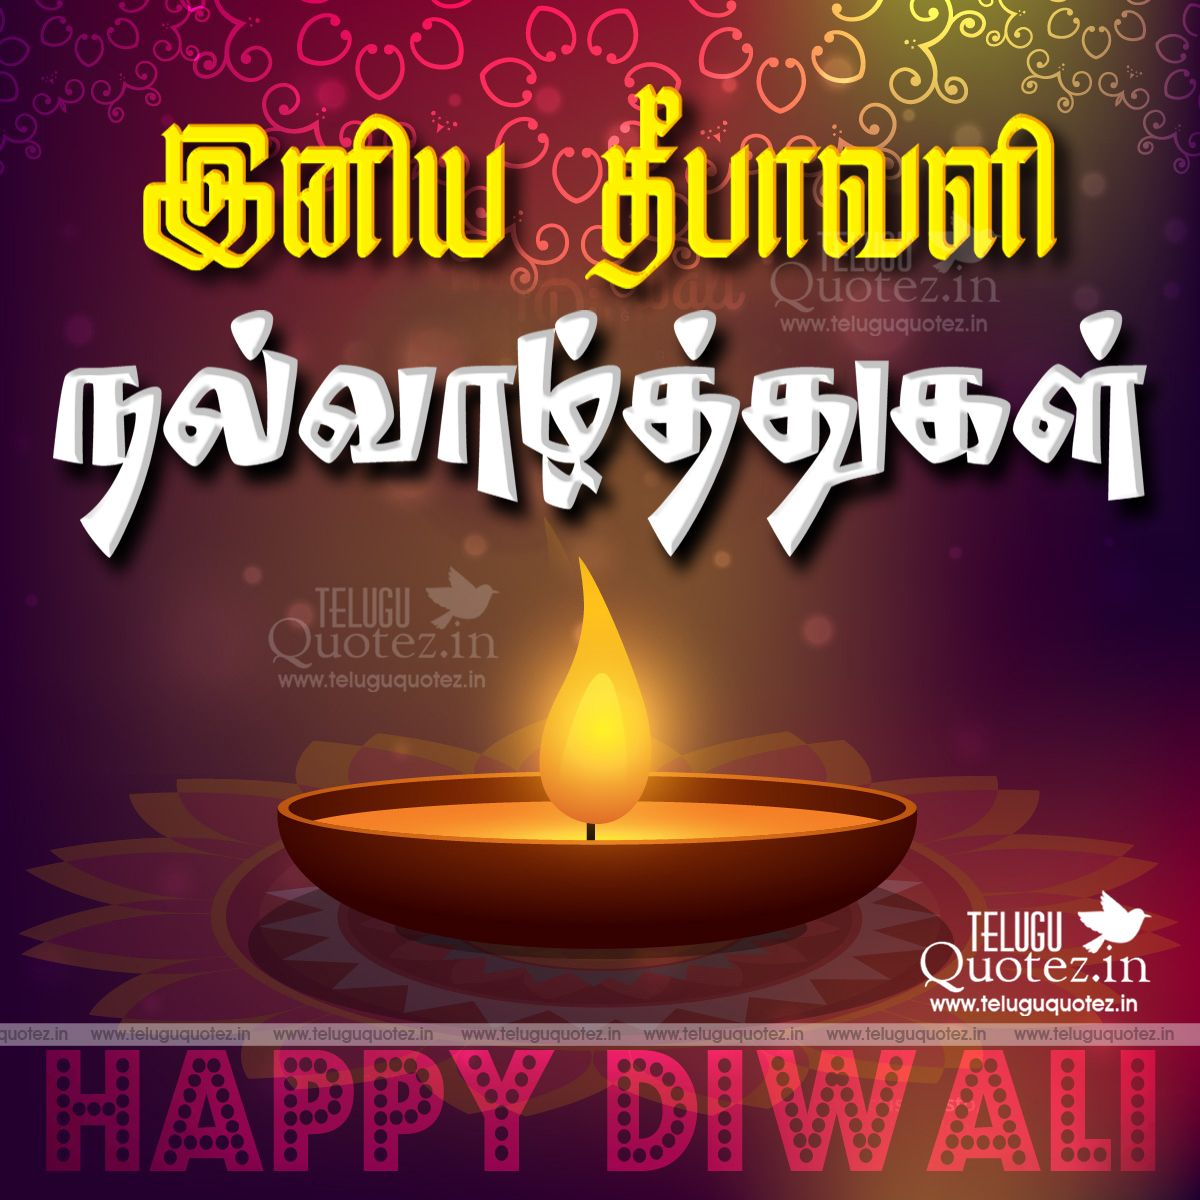 Happy diwali tamil quotes wisheswish you happy diwali tamil happy diwali tamil quotes wisheswish you happy diwali tamil quoteshappy diwali sms kristyandbryce Gallery